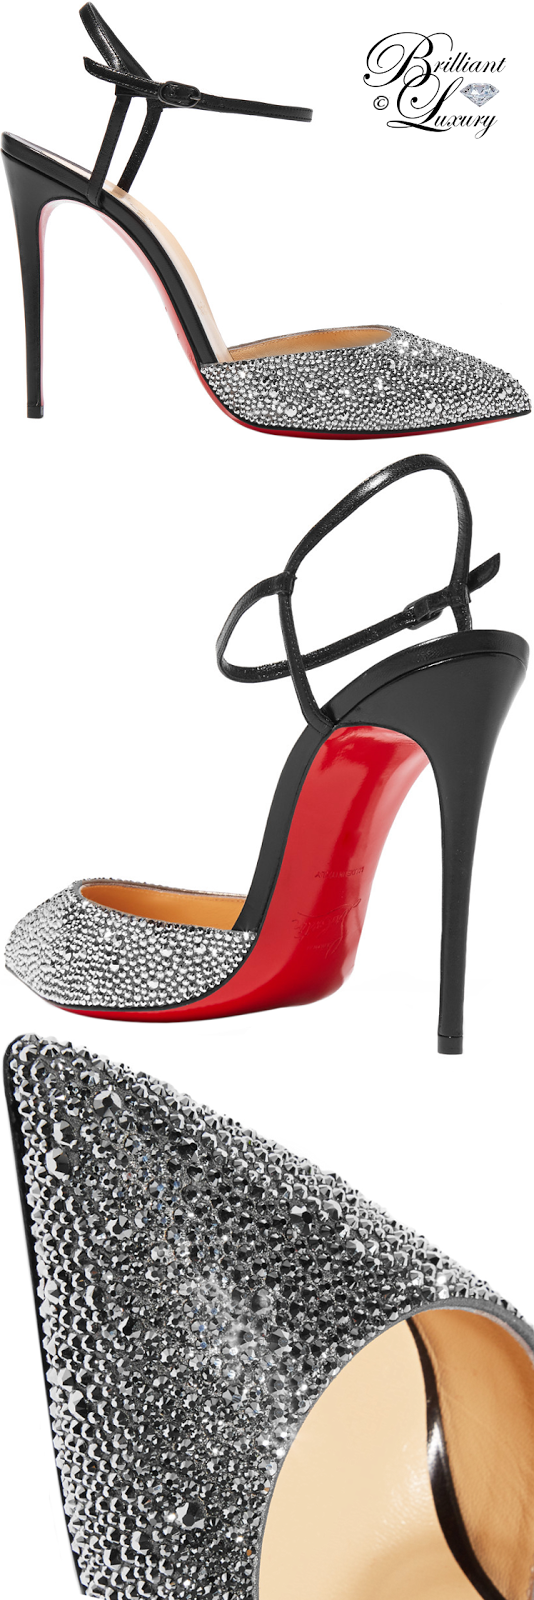 Brilliant Luxury ♦ Christian Louboutin Riverina Riverina Ankle-Strap Slingback Pumps